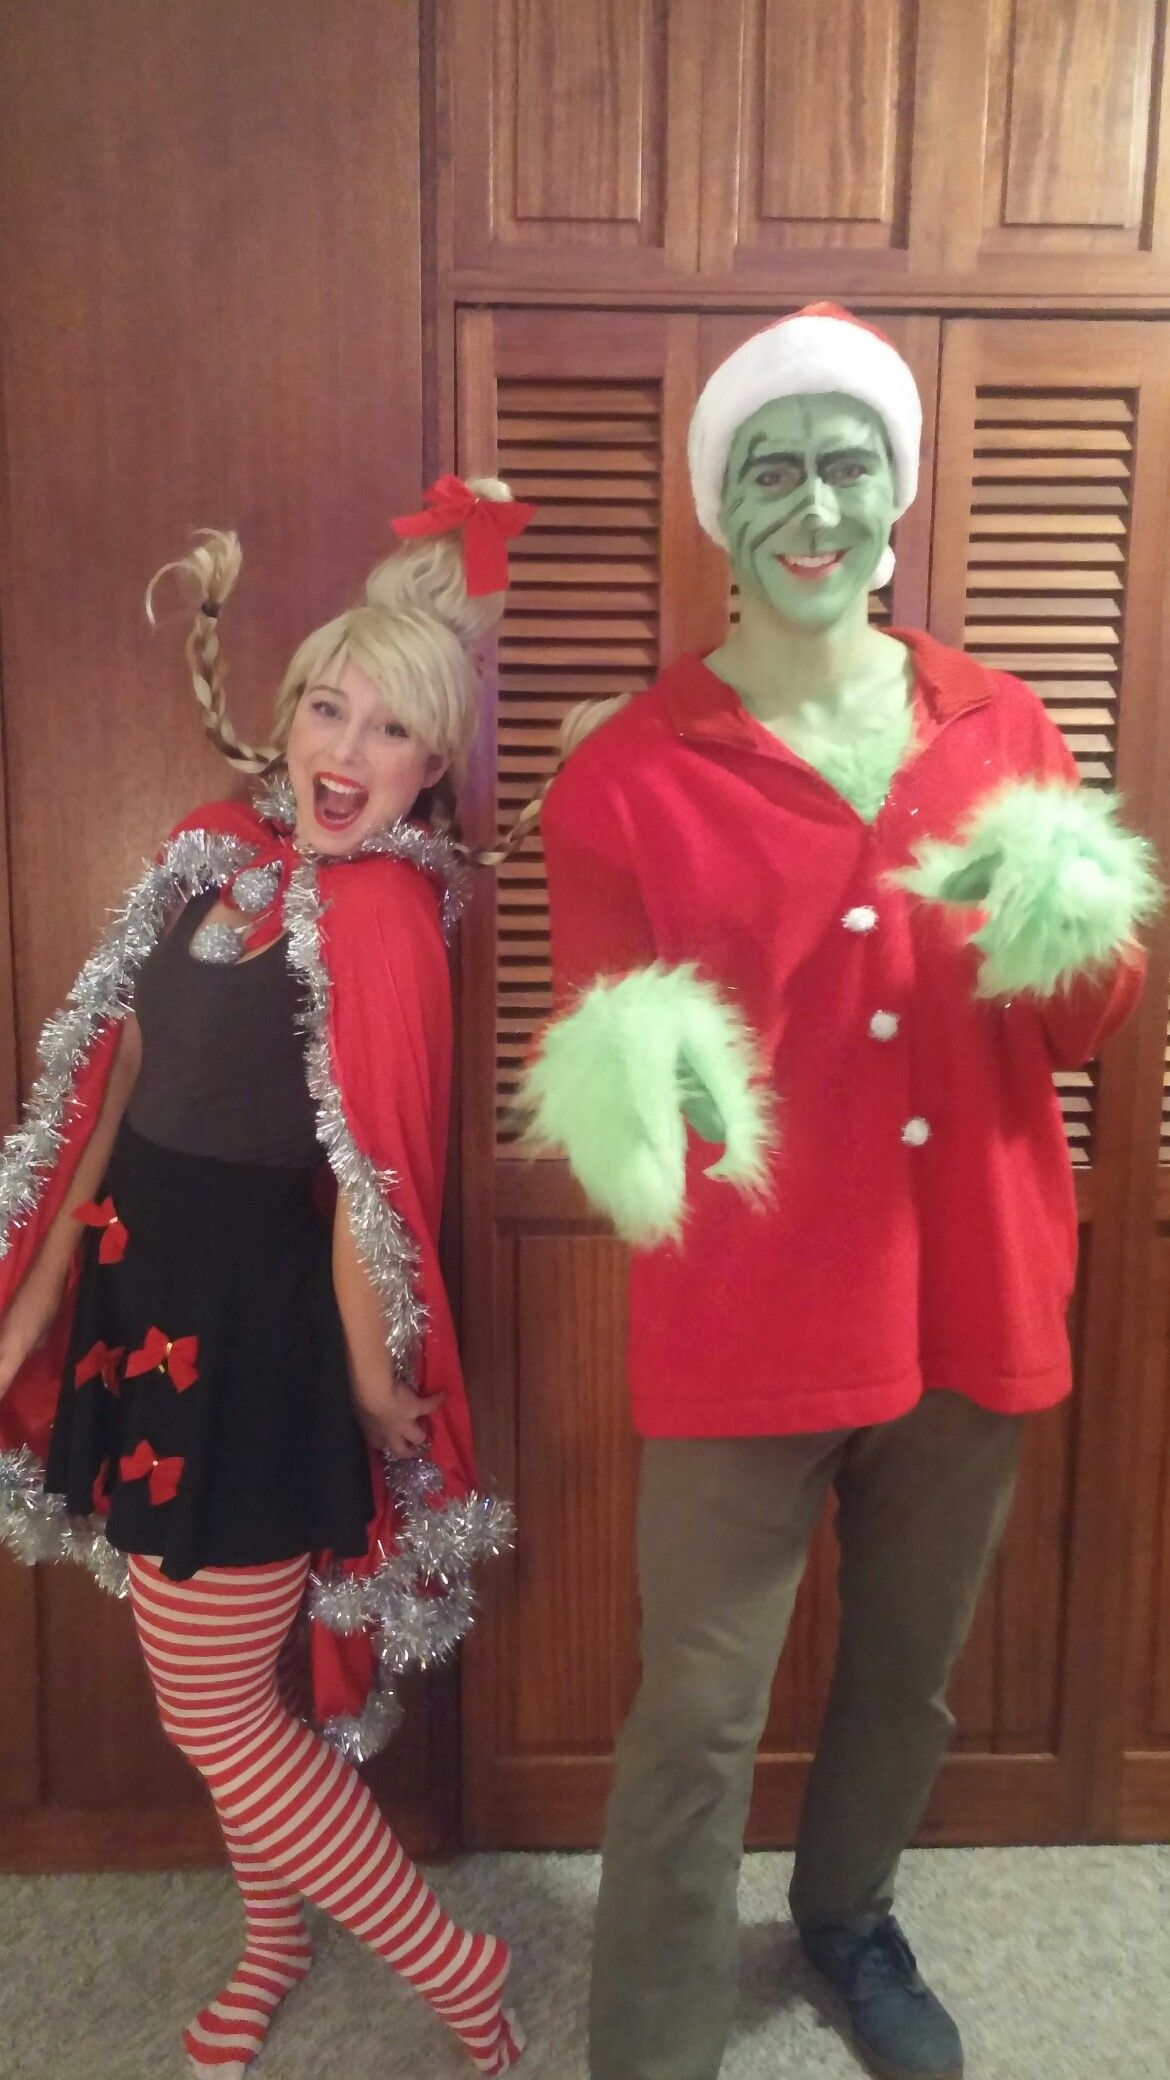 Cindy Lou Who and the Grinch DIY Halloween costume by